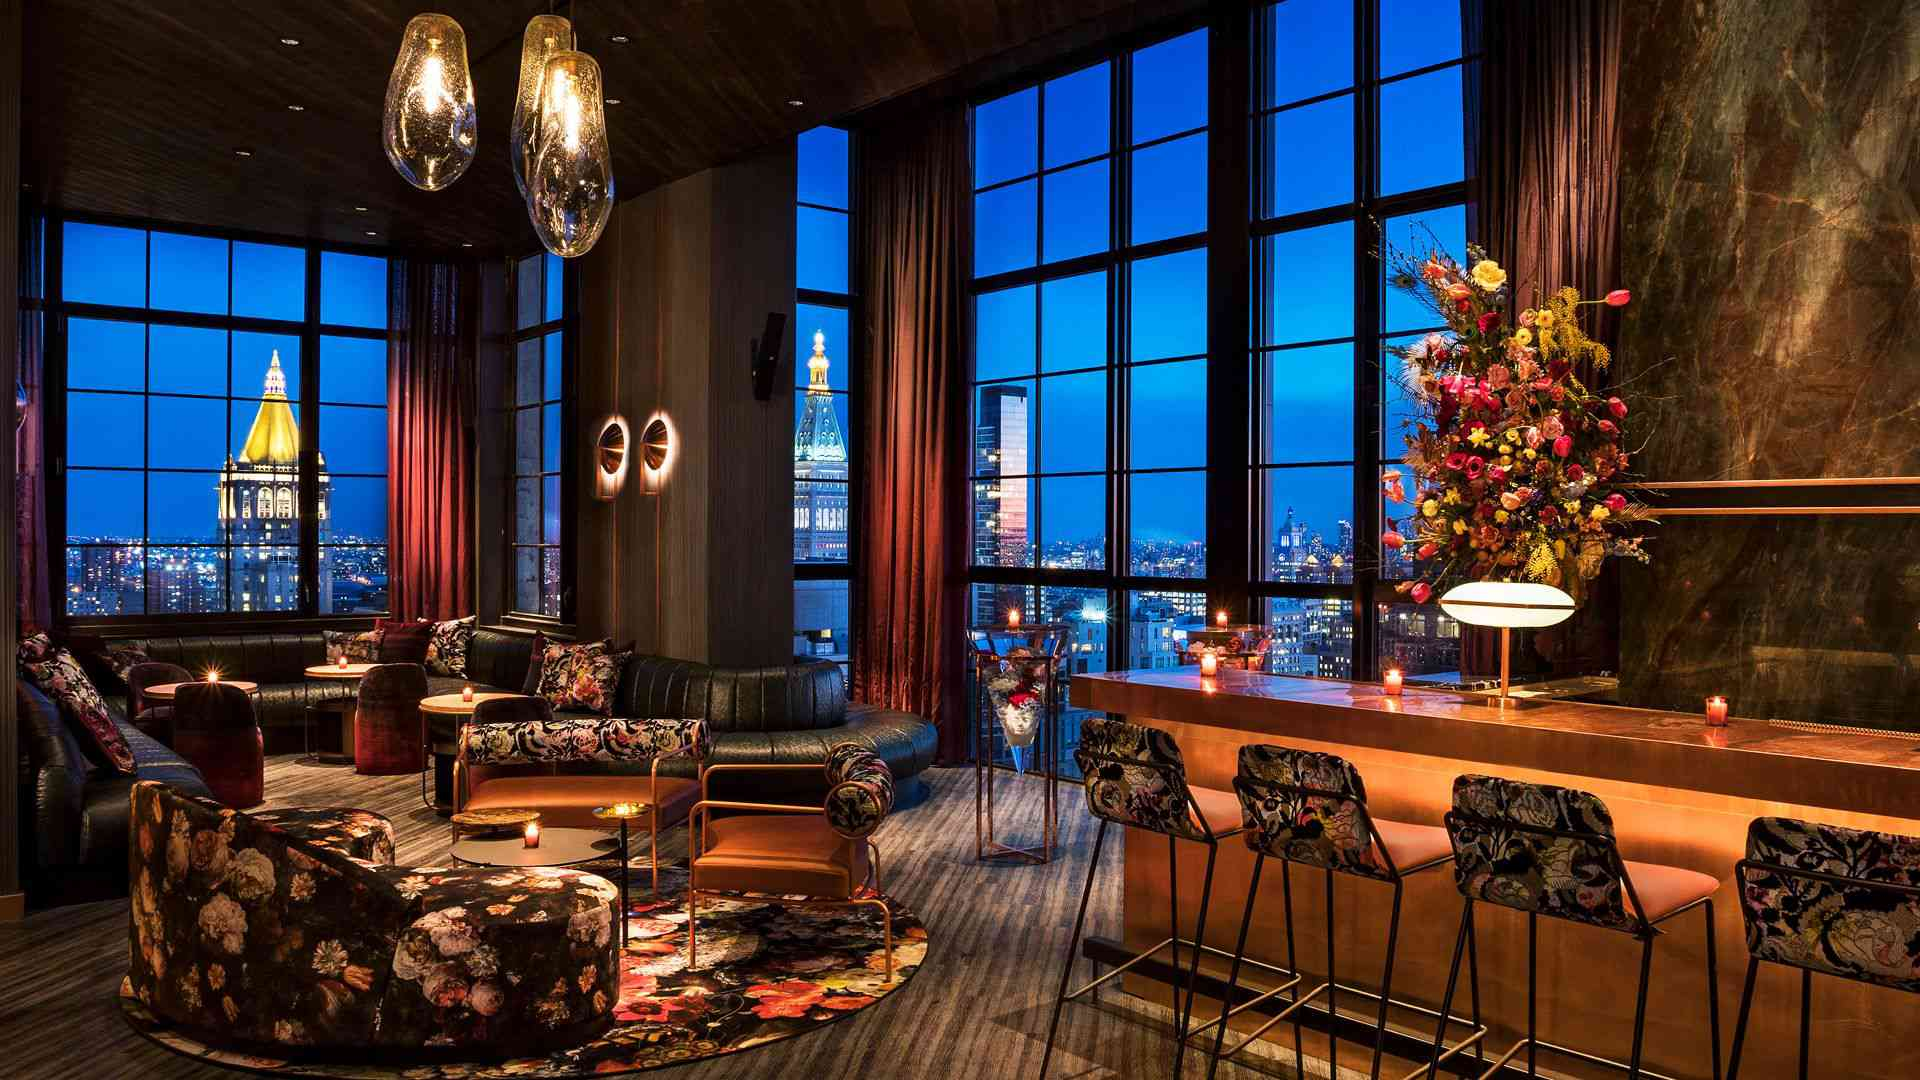 The Fleur Room at the Moxy in manhattan with lounge chairs and seating and a view of manhattan at Twilight